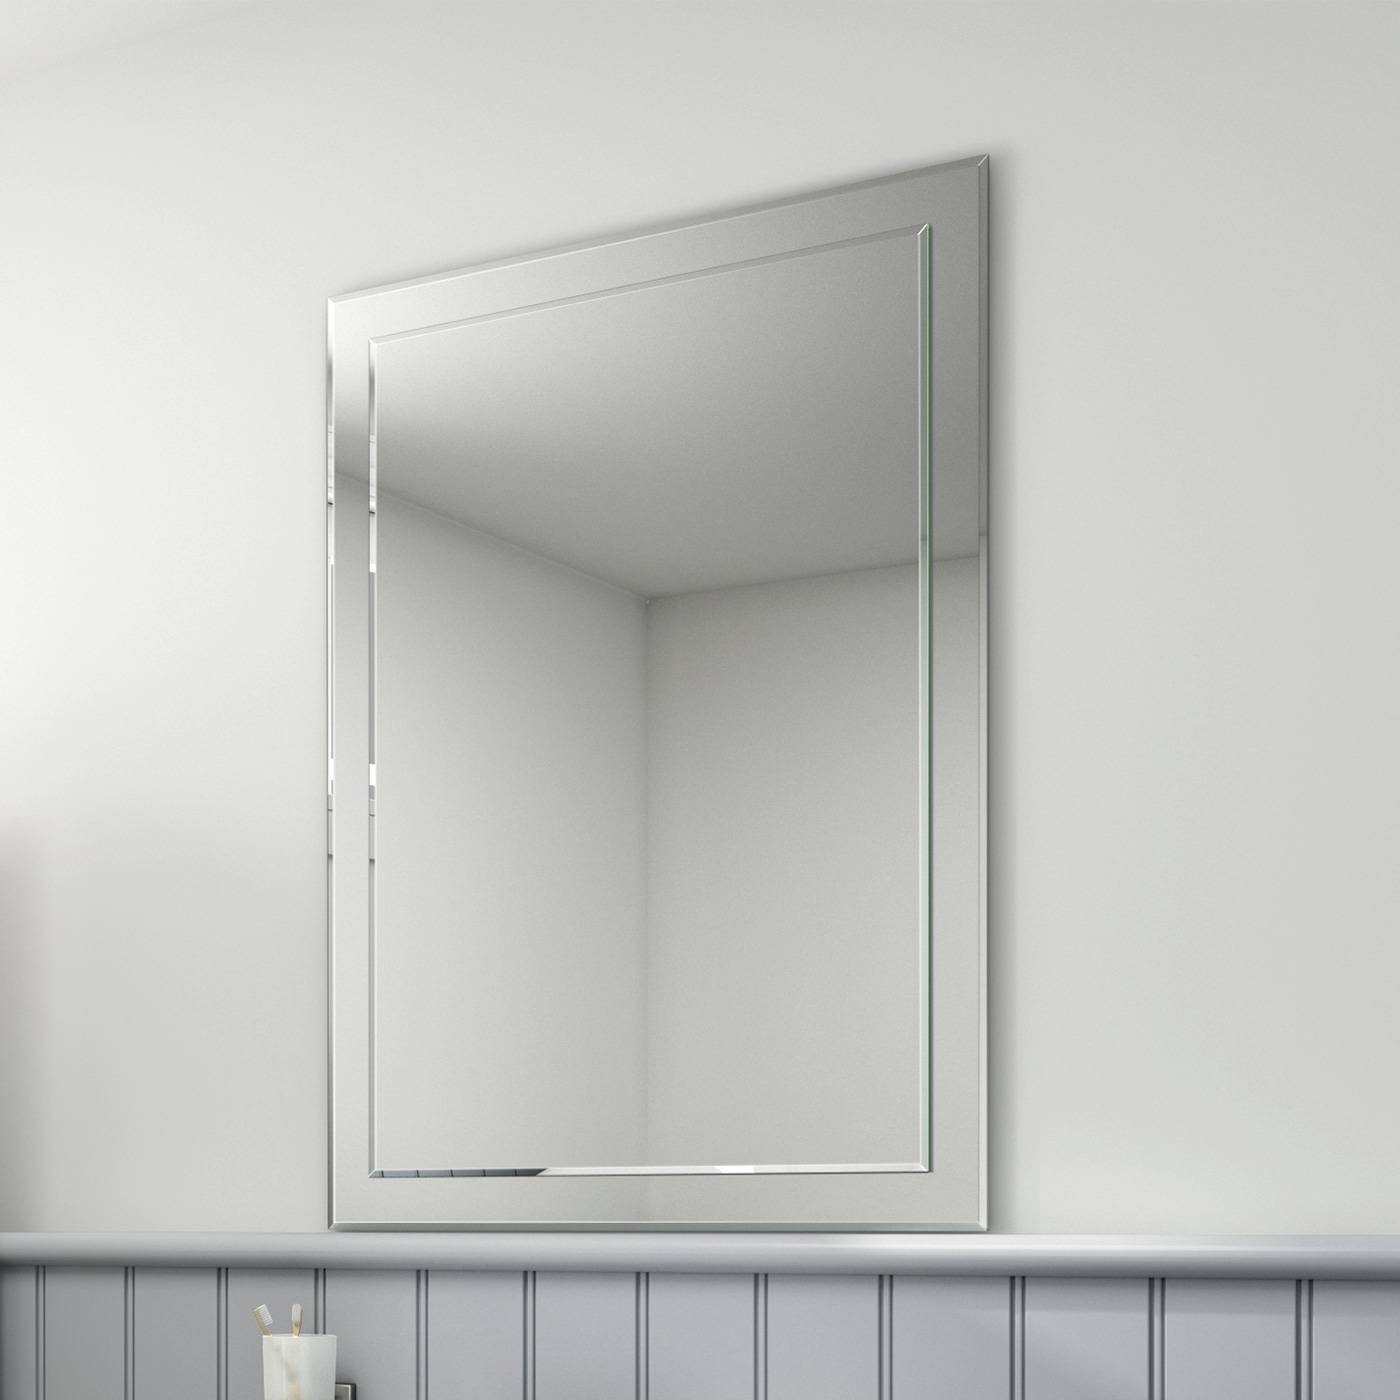 500X700Mm Rectangular Glass Bevelled Edge Bathroom Mirror Mc148 | Ebay With Bevelled Edge Bathroom Mirrors (Photo 2 of 15)